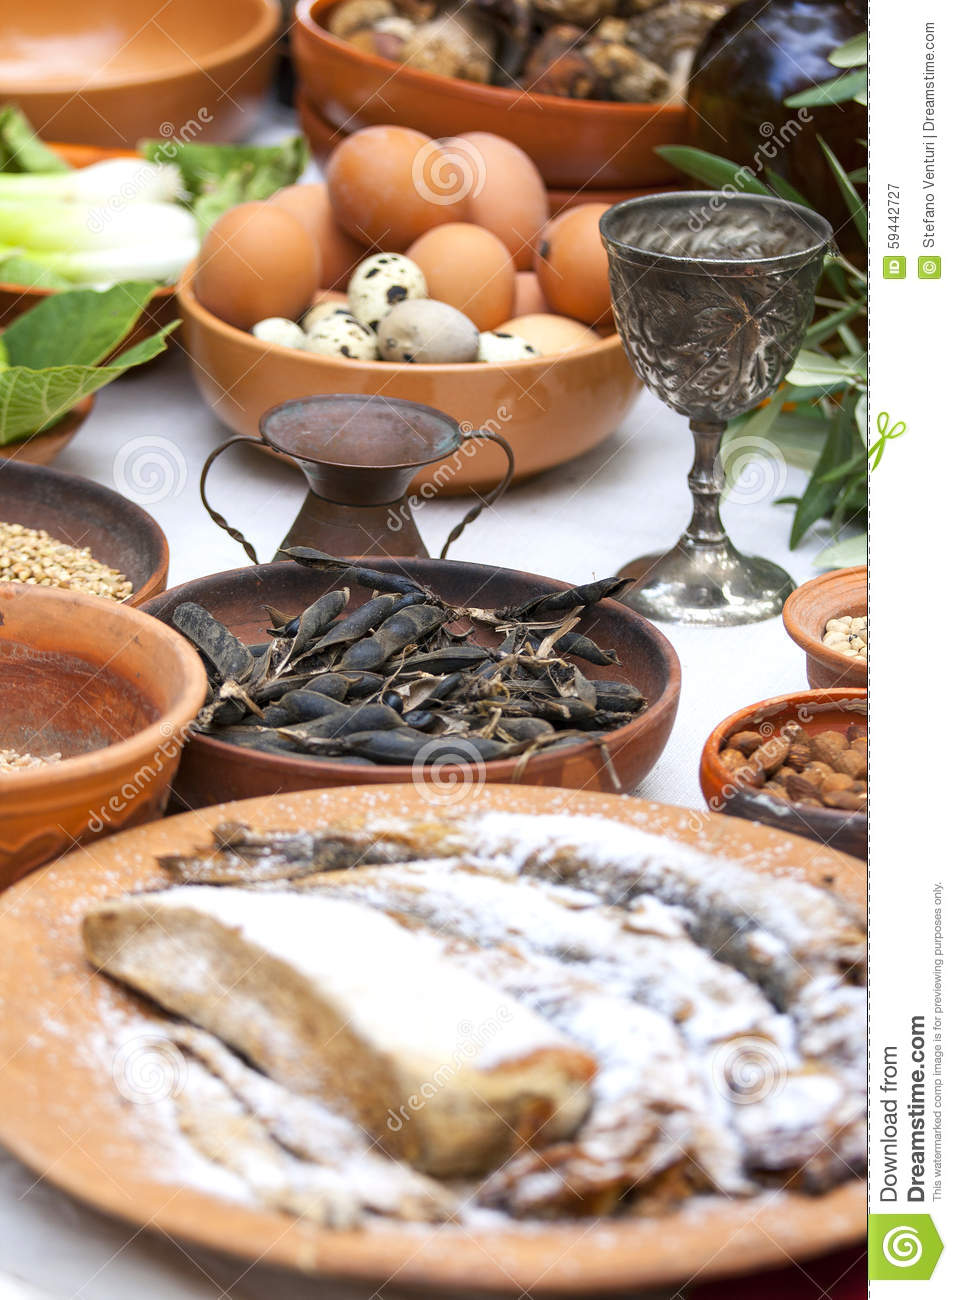 Preparing ancient roman food stock photo image 59442727 for Ancient roman cuisine